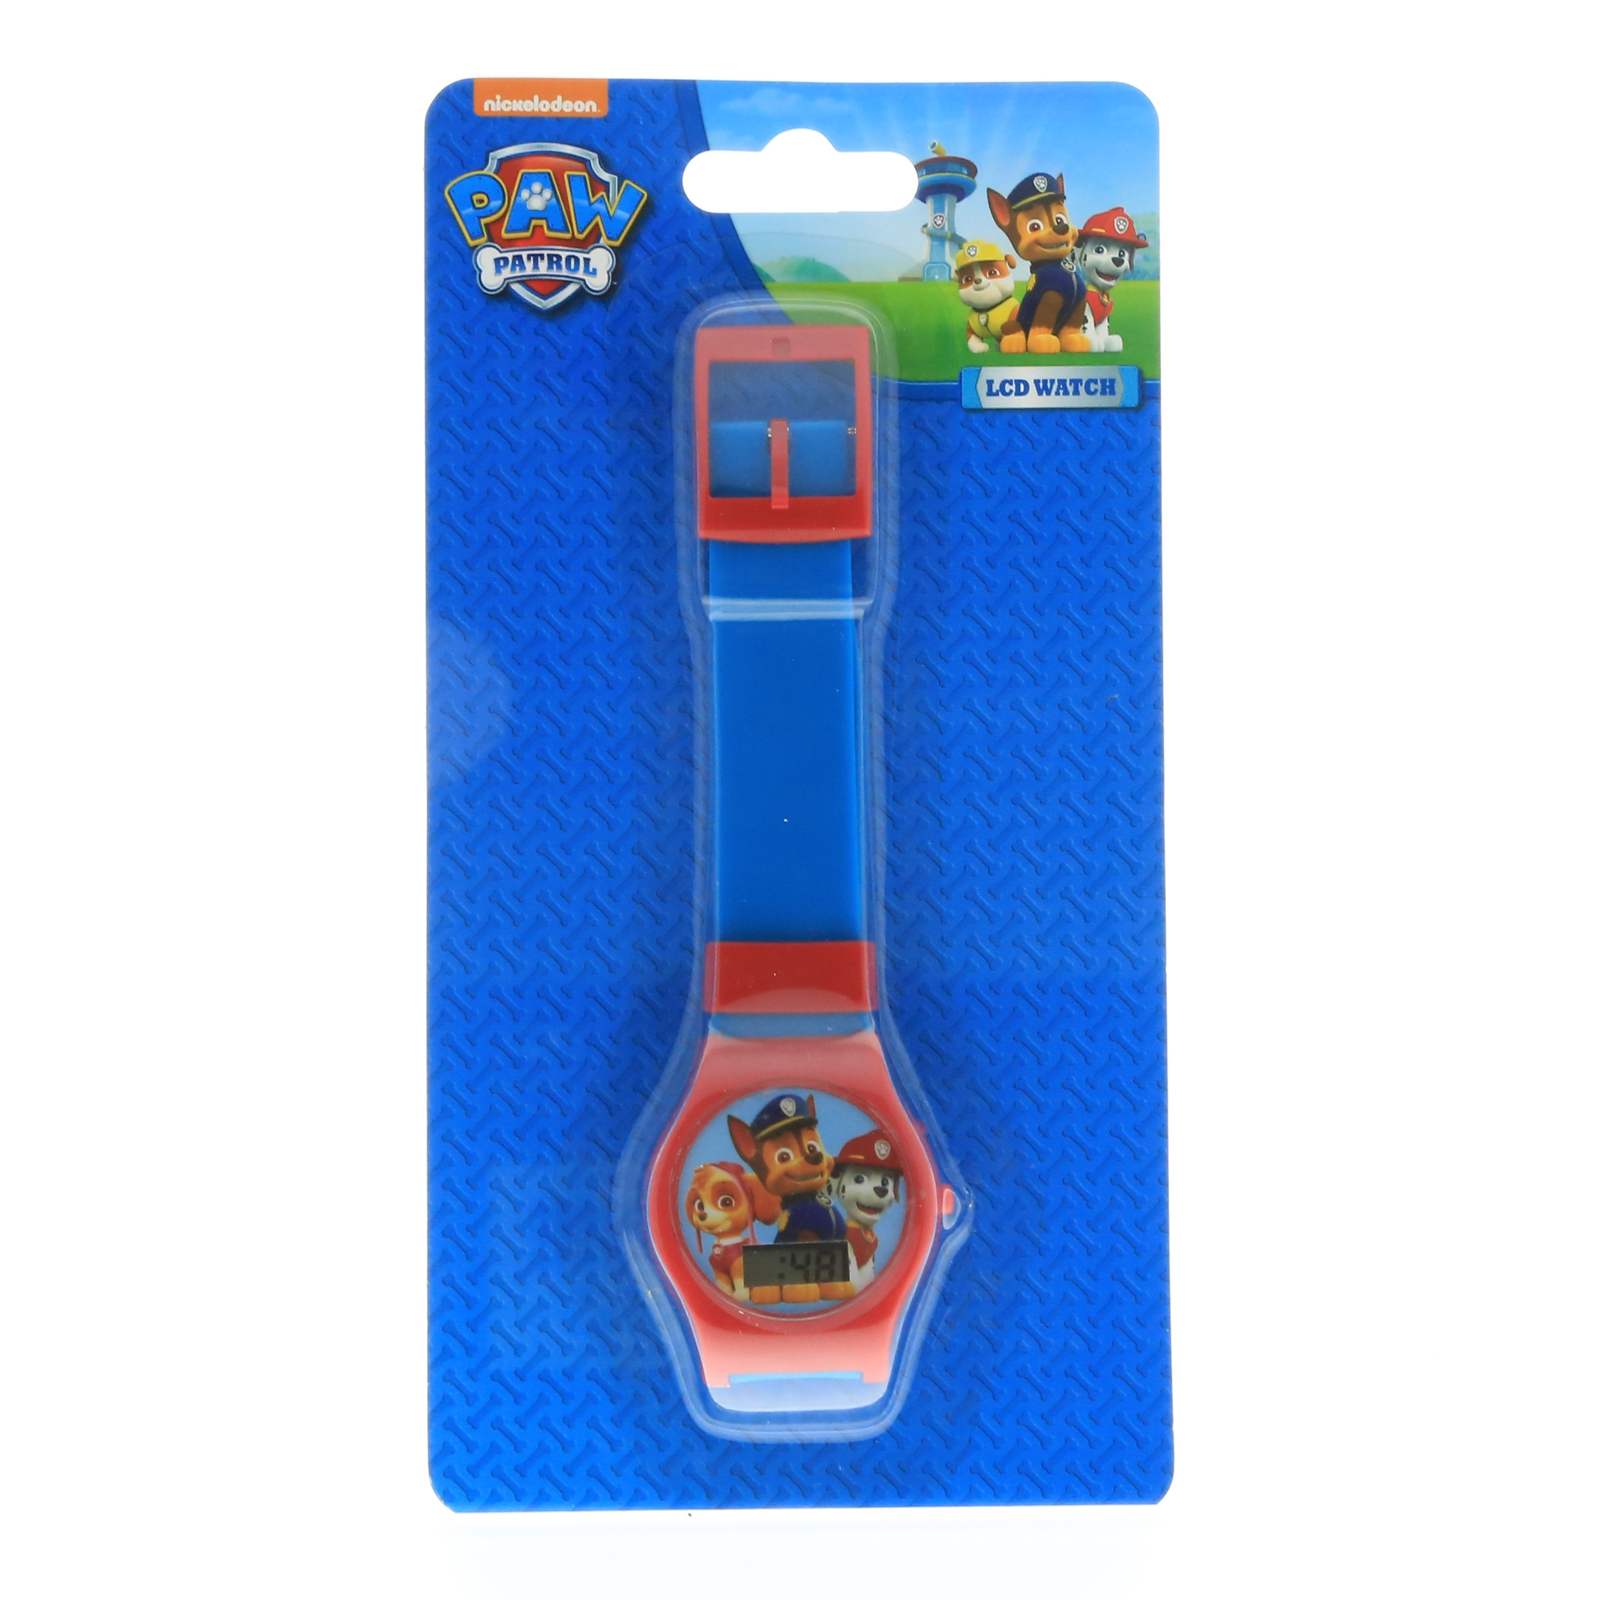 Nickelodeon Paw Patrol Boys LCD Wrist Watch Digital Style Adjustable Strap Blue